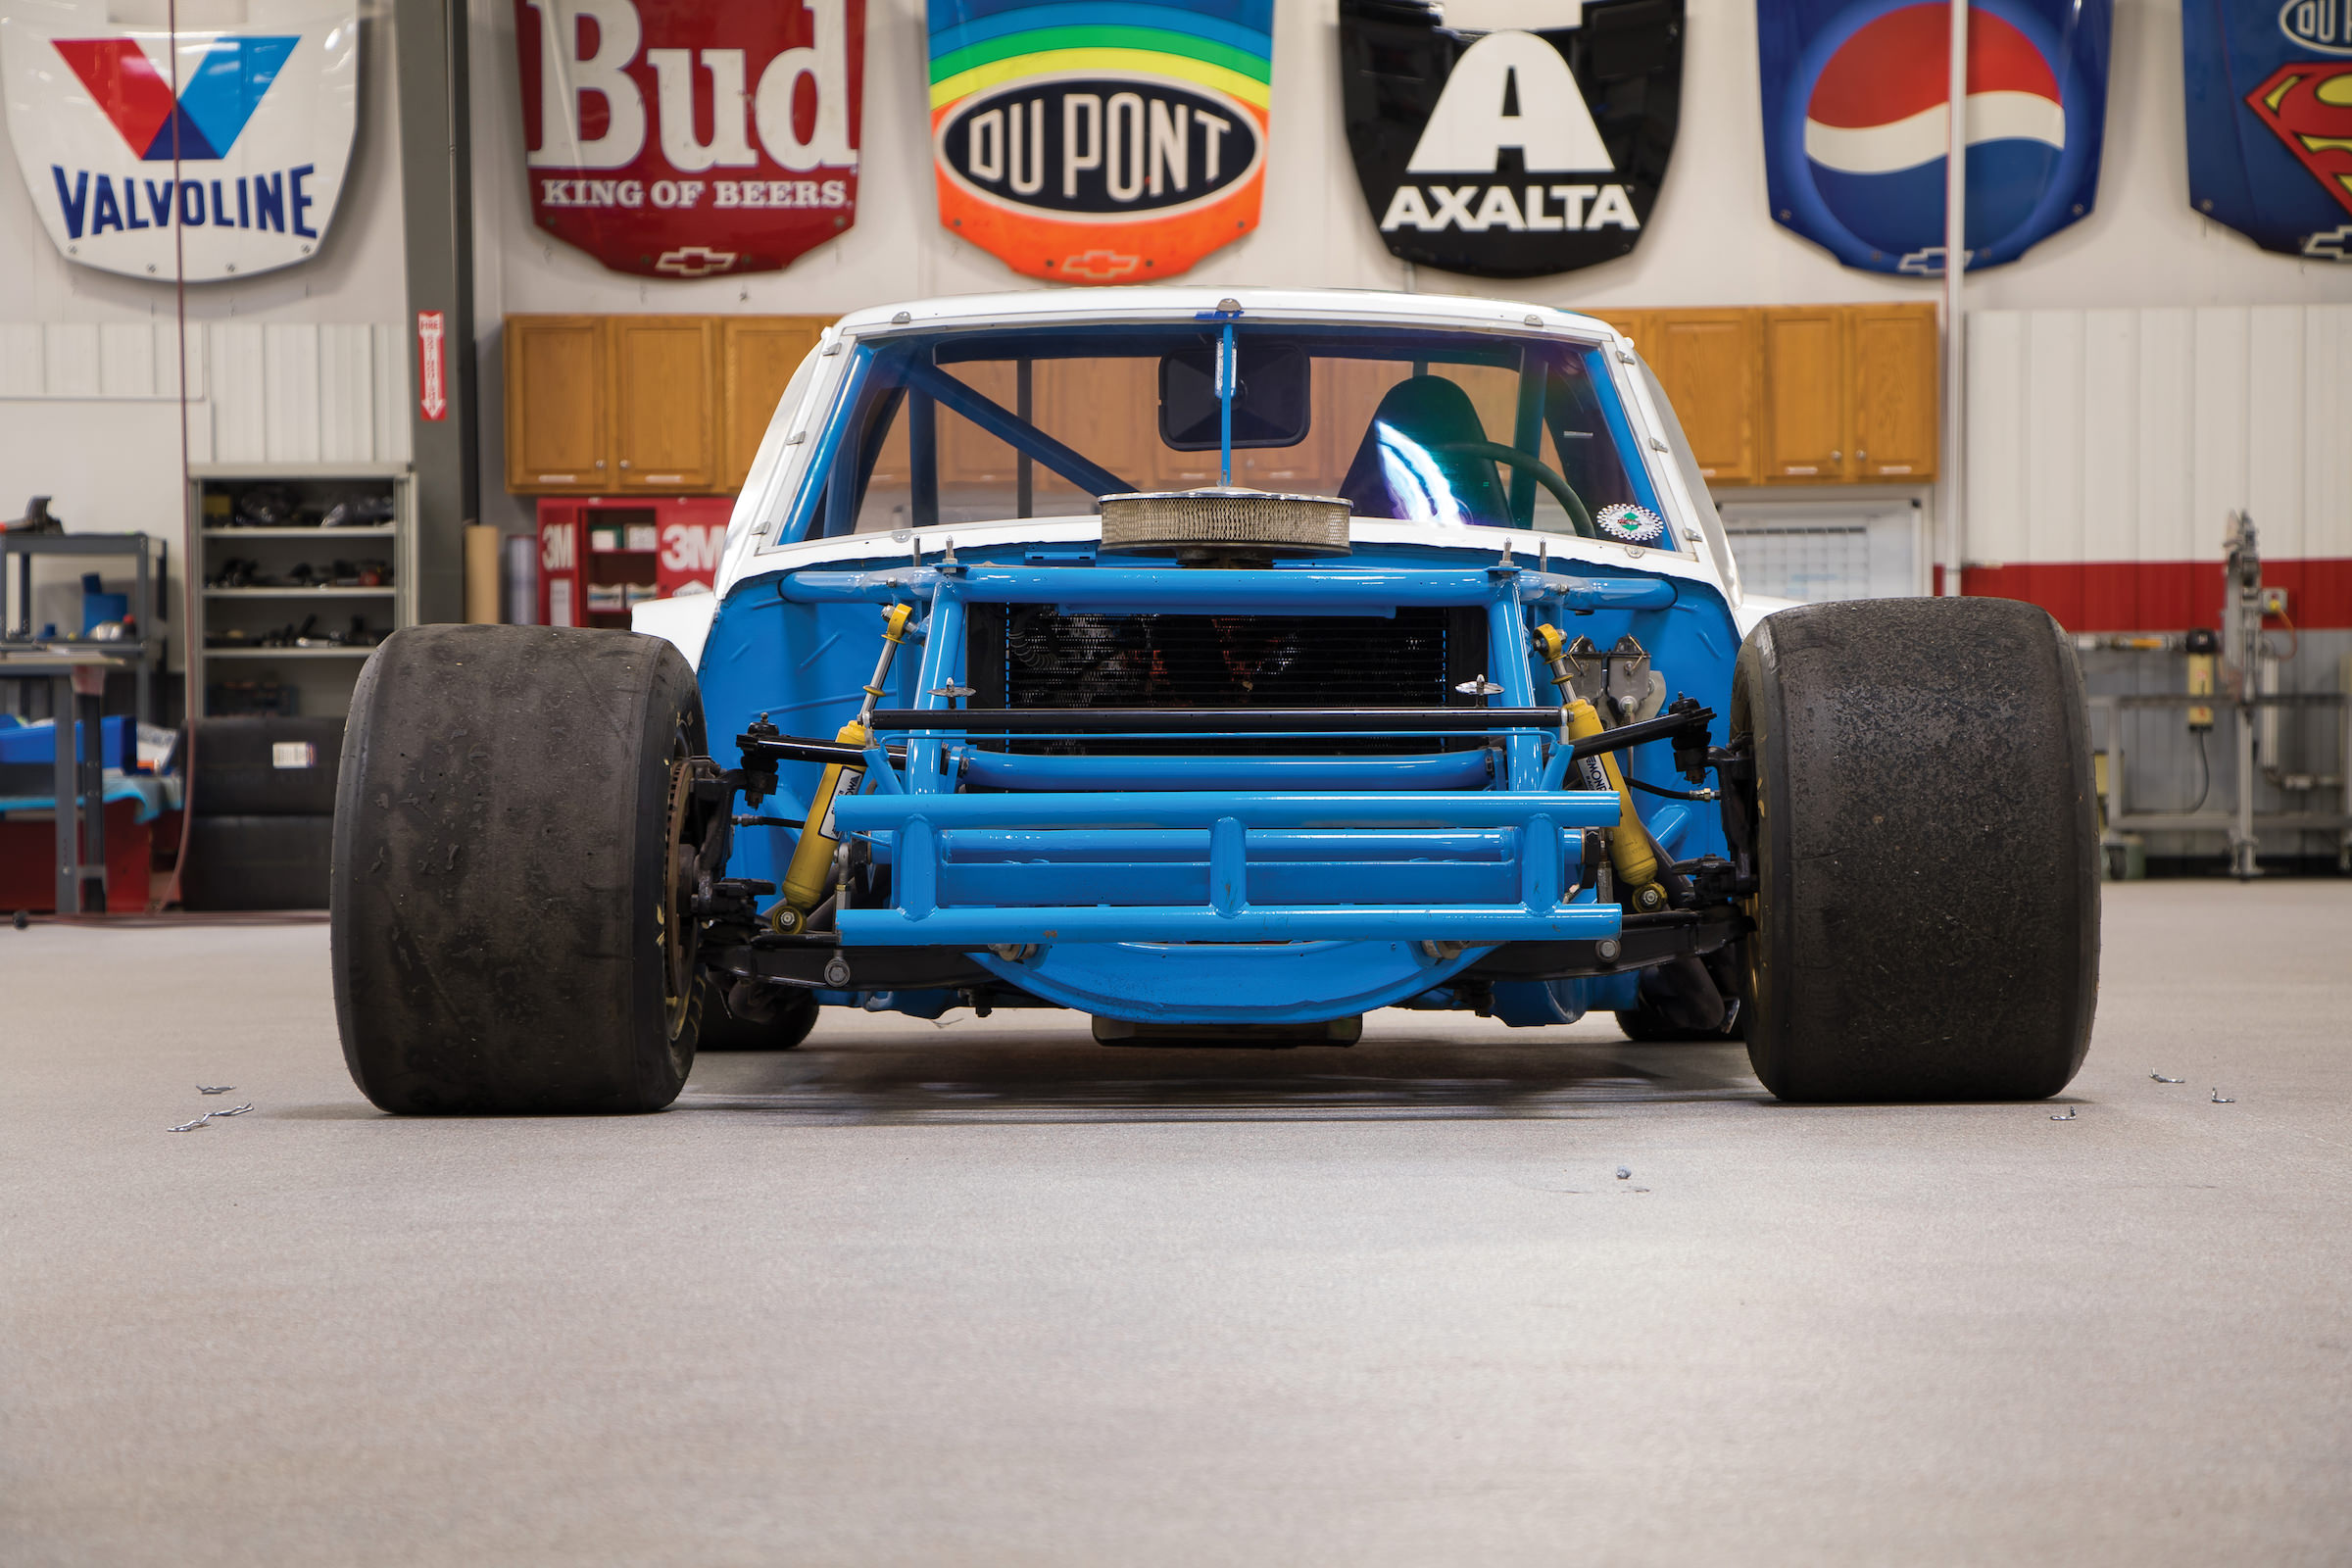 1971 AMC Gremlin Modified Stock Car - Raced in the 1970s at